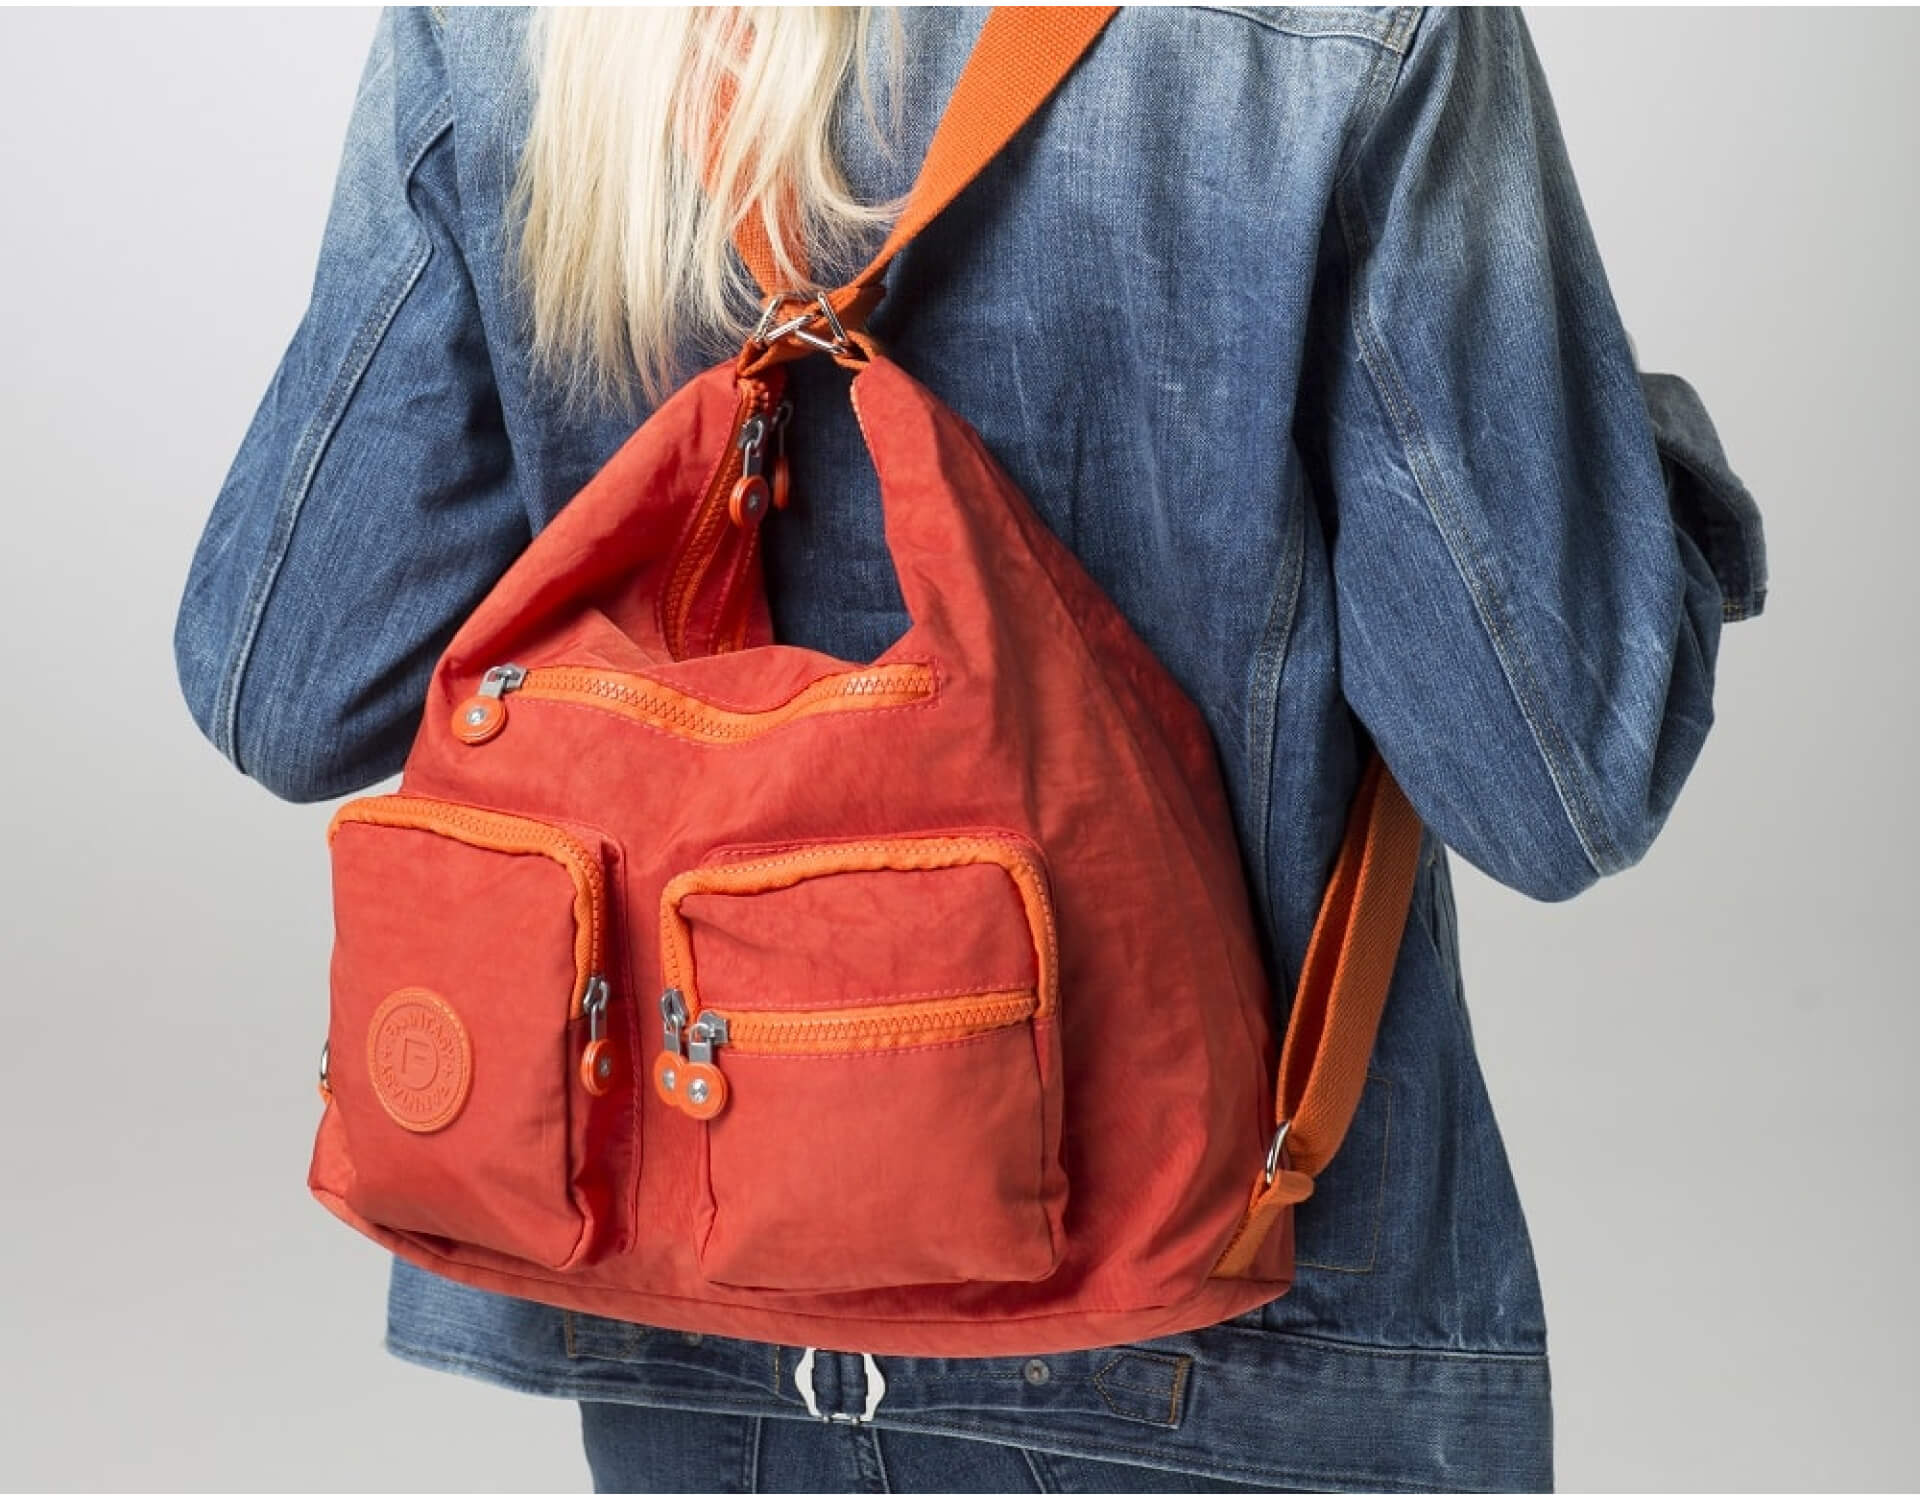 First way of wearing the bergsflexy is as a shoulder bag. We could call it the basic form, open a brand new one and it looks like this.